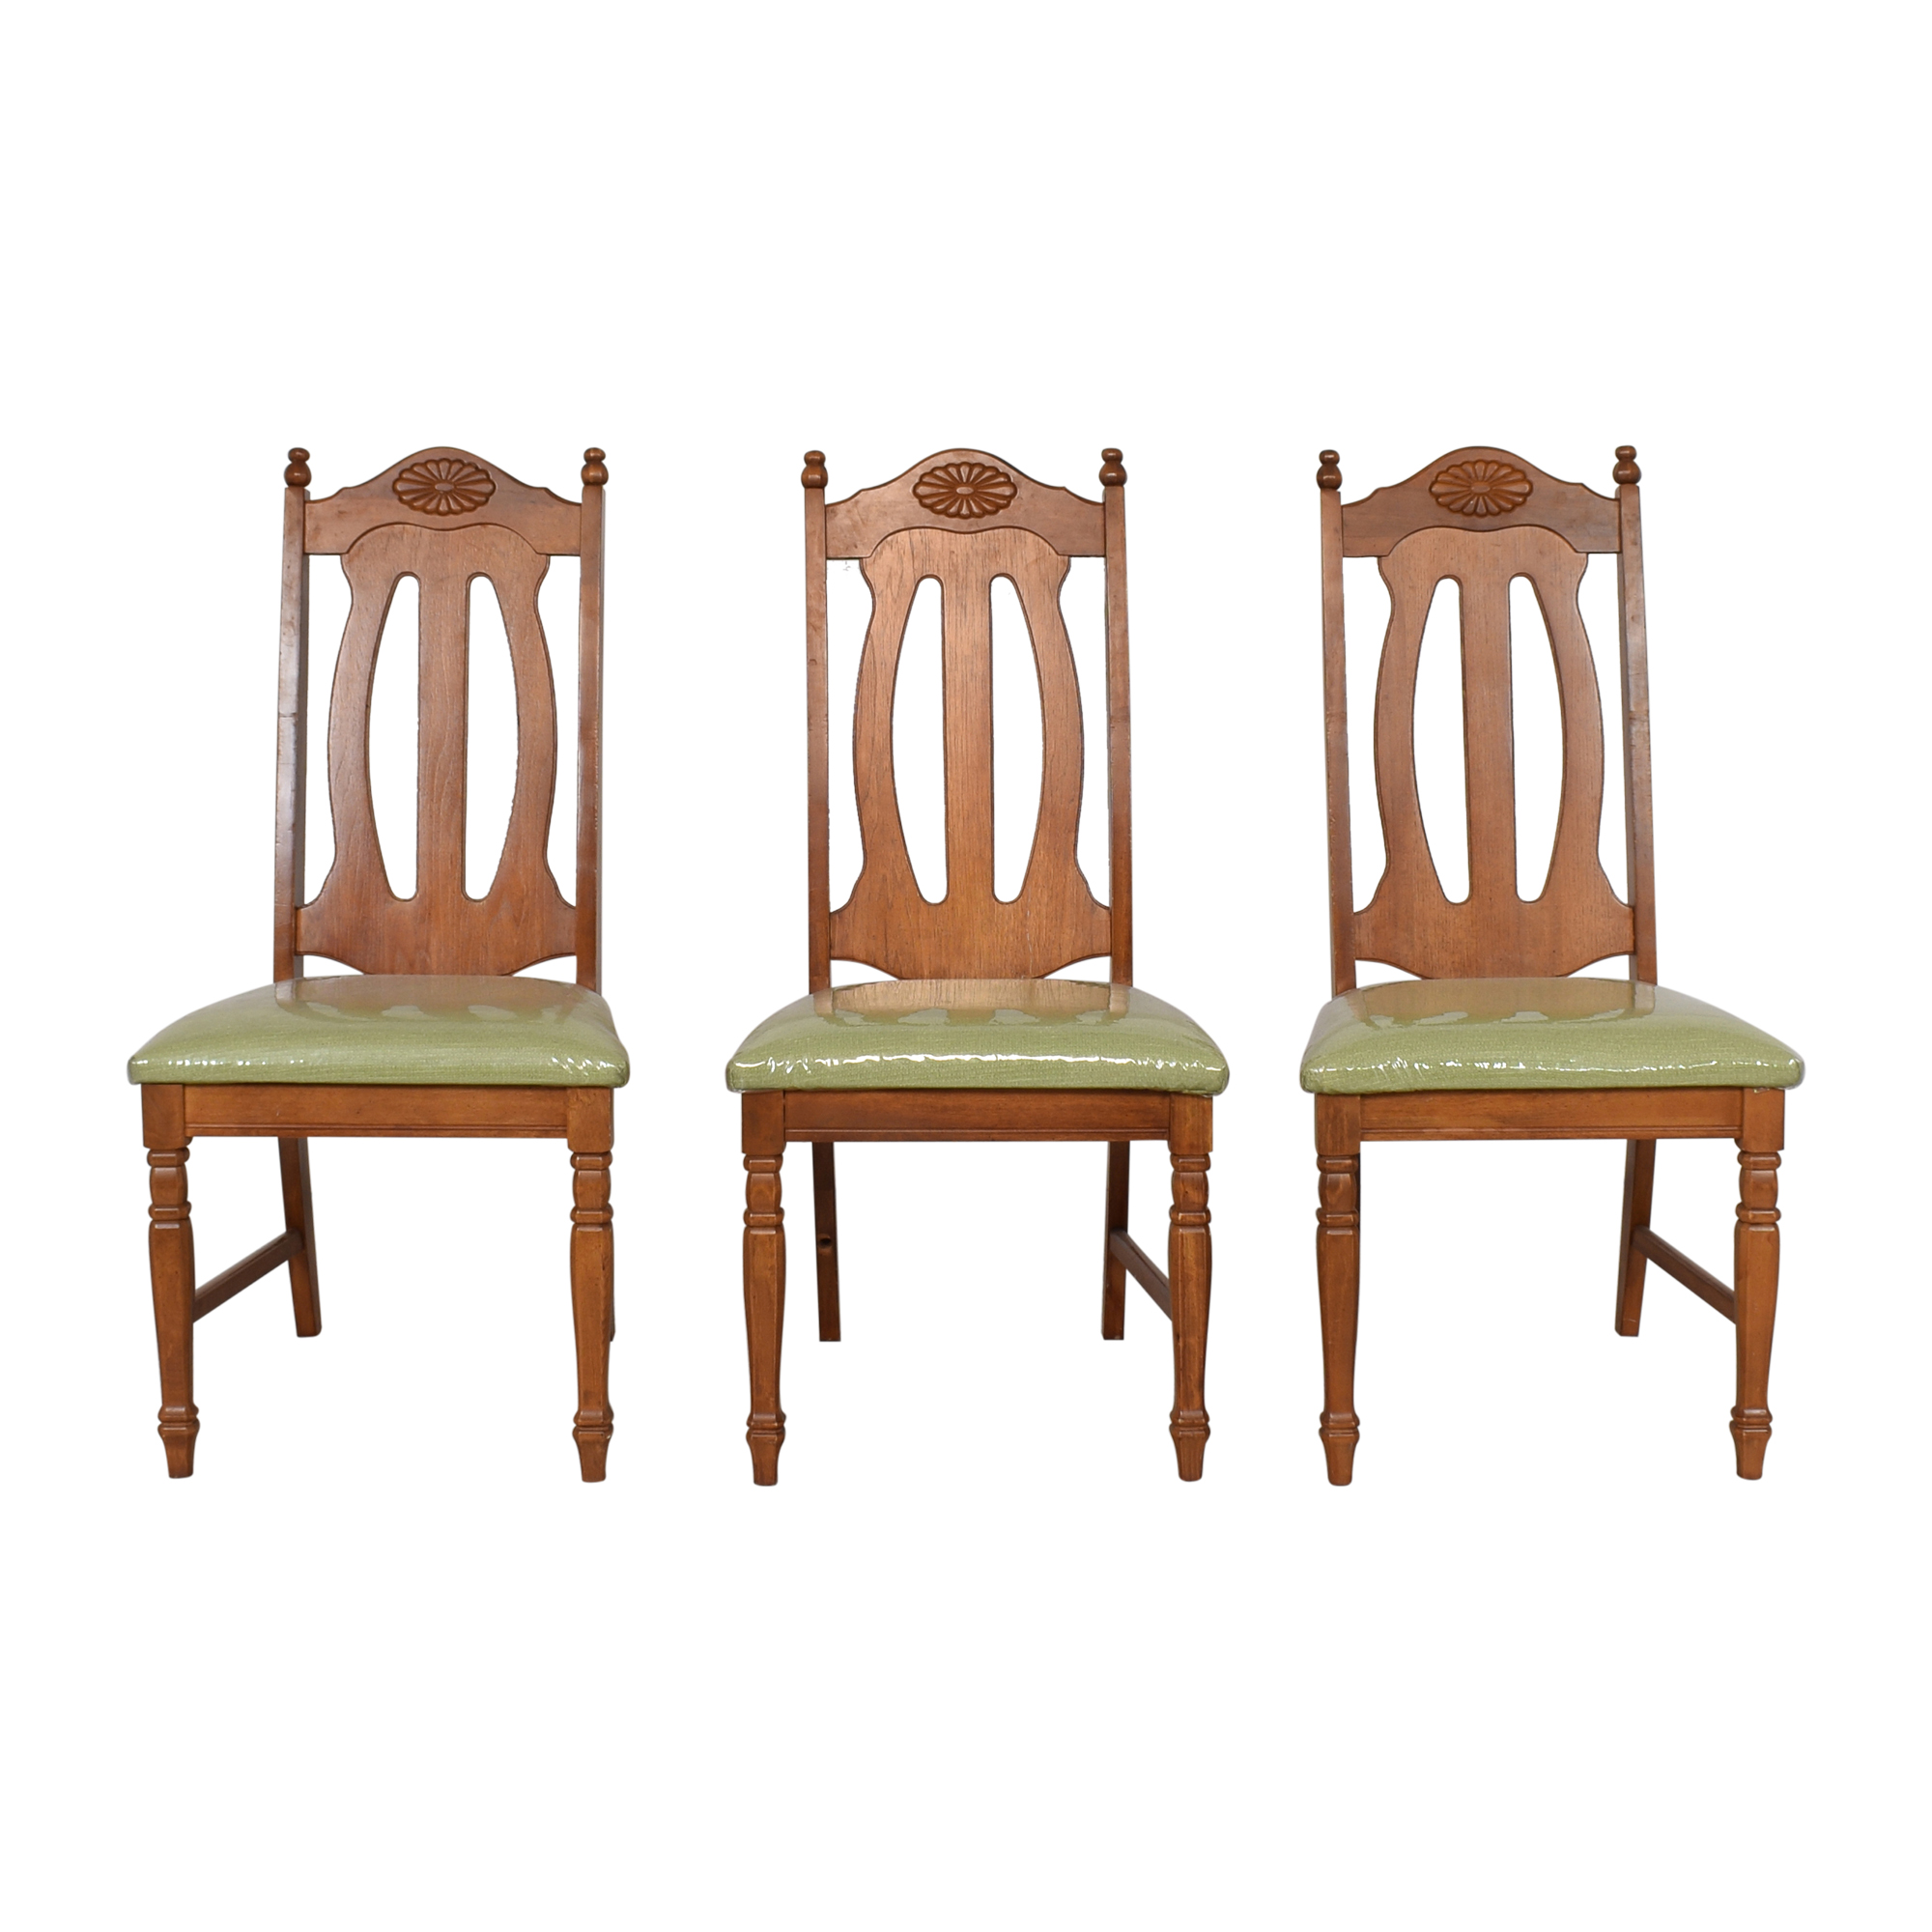 Bassett Furniture Bassett Furniture Vintage Dining Chairs ct